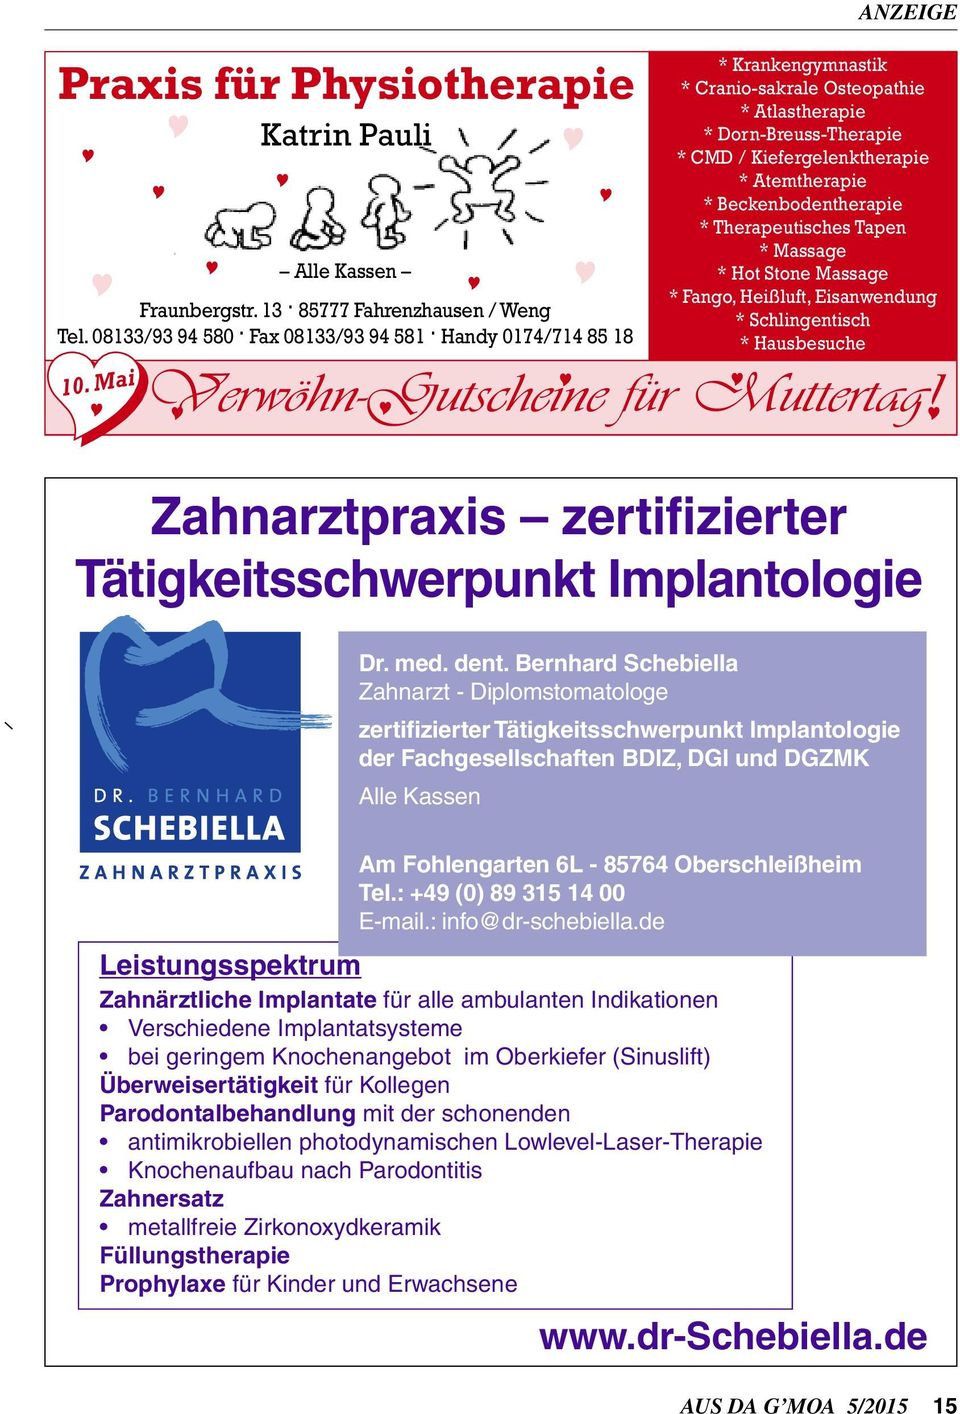 Osteopathie * Atlastherapie * Dorn-Breuss-Therapie * CMD / Kiefergelenktherapie * Atemtherapie * Beckenbodentherapie * Therapeutisches Tapen * Massage * Hot Stone Massage * Fango, Heißluft,